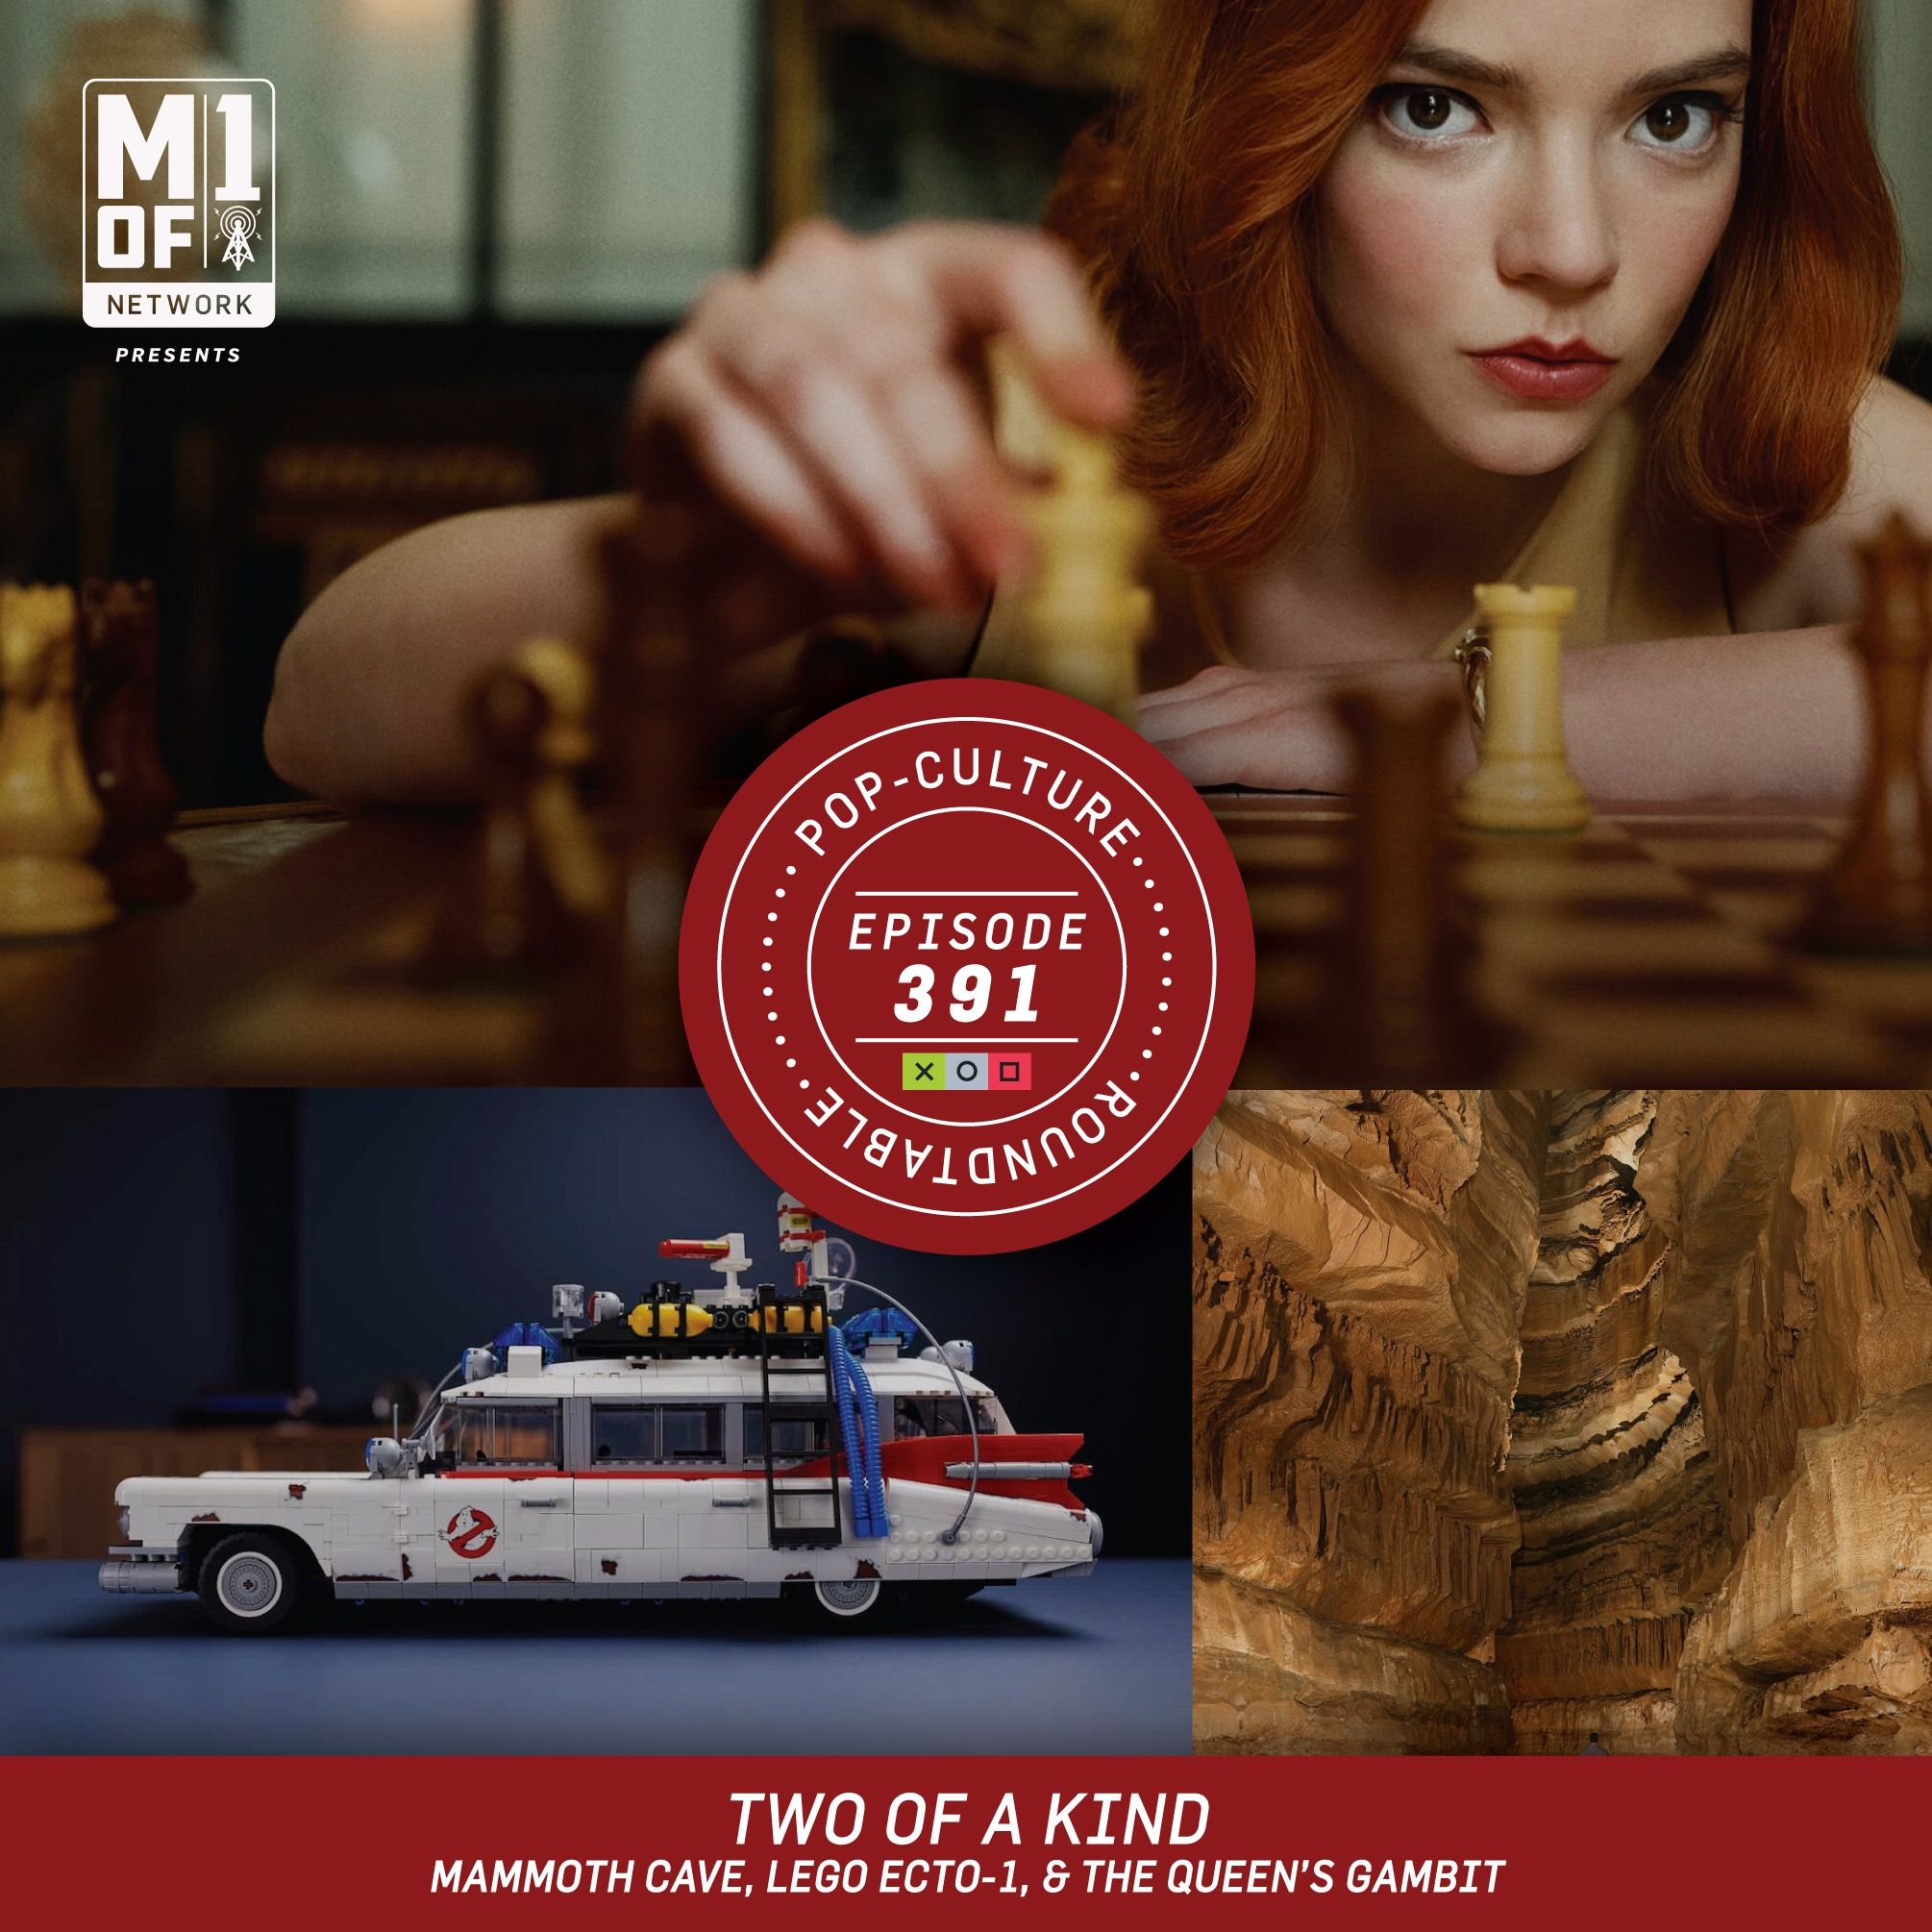 PCR: Two of a Kind - Mammoth Cave, Lego Ecto-1, & the Queen's Gambit